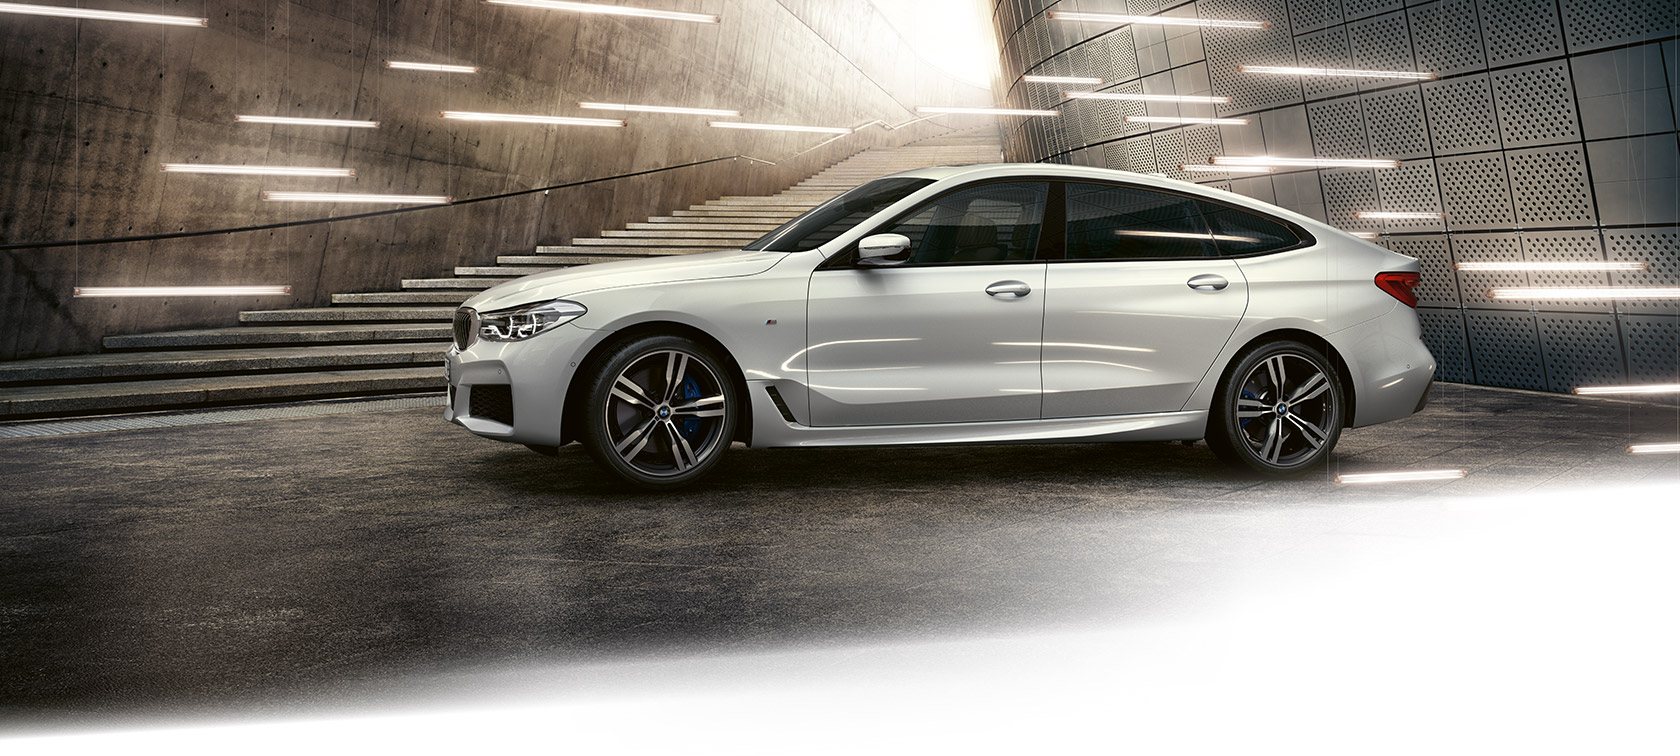 BMW 6 Series Gran Turismo: metallic car in front of steps.